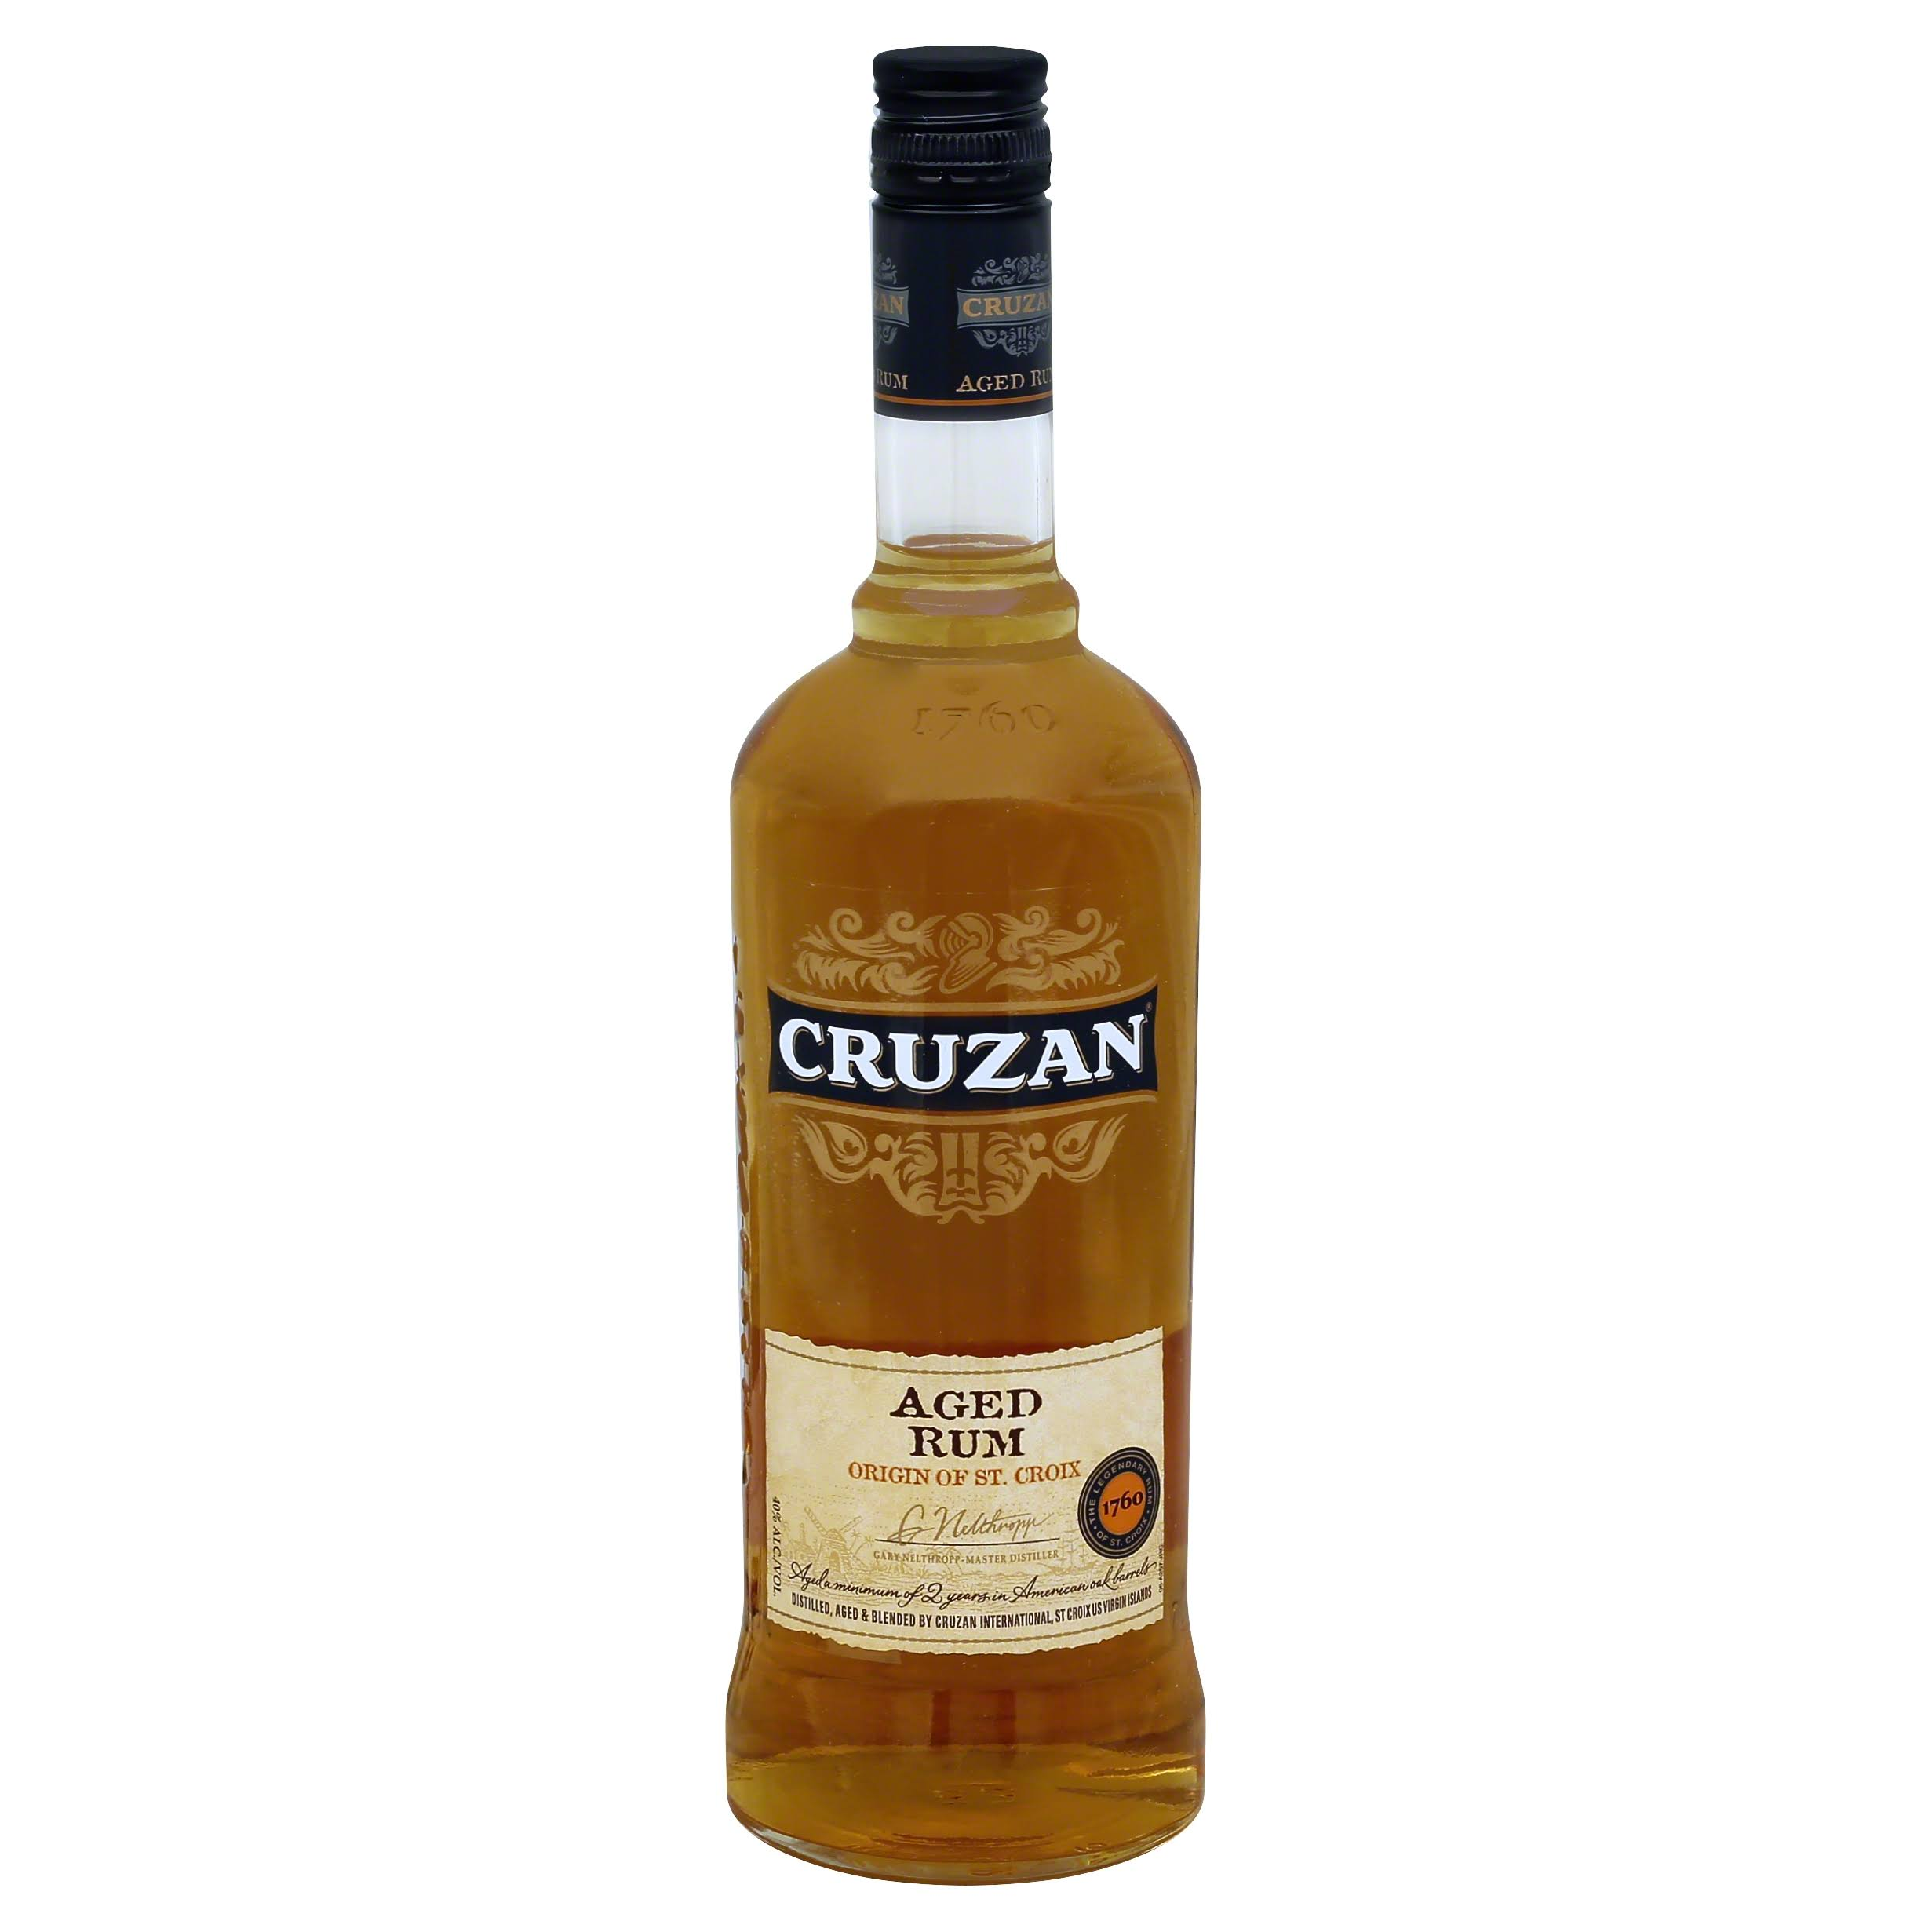 Jim Beam Cruzan Aged Rum - 750ml